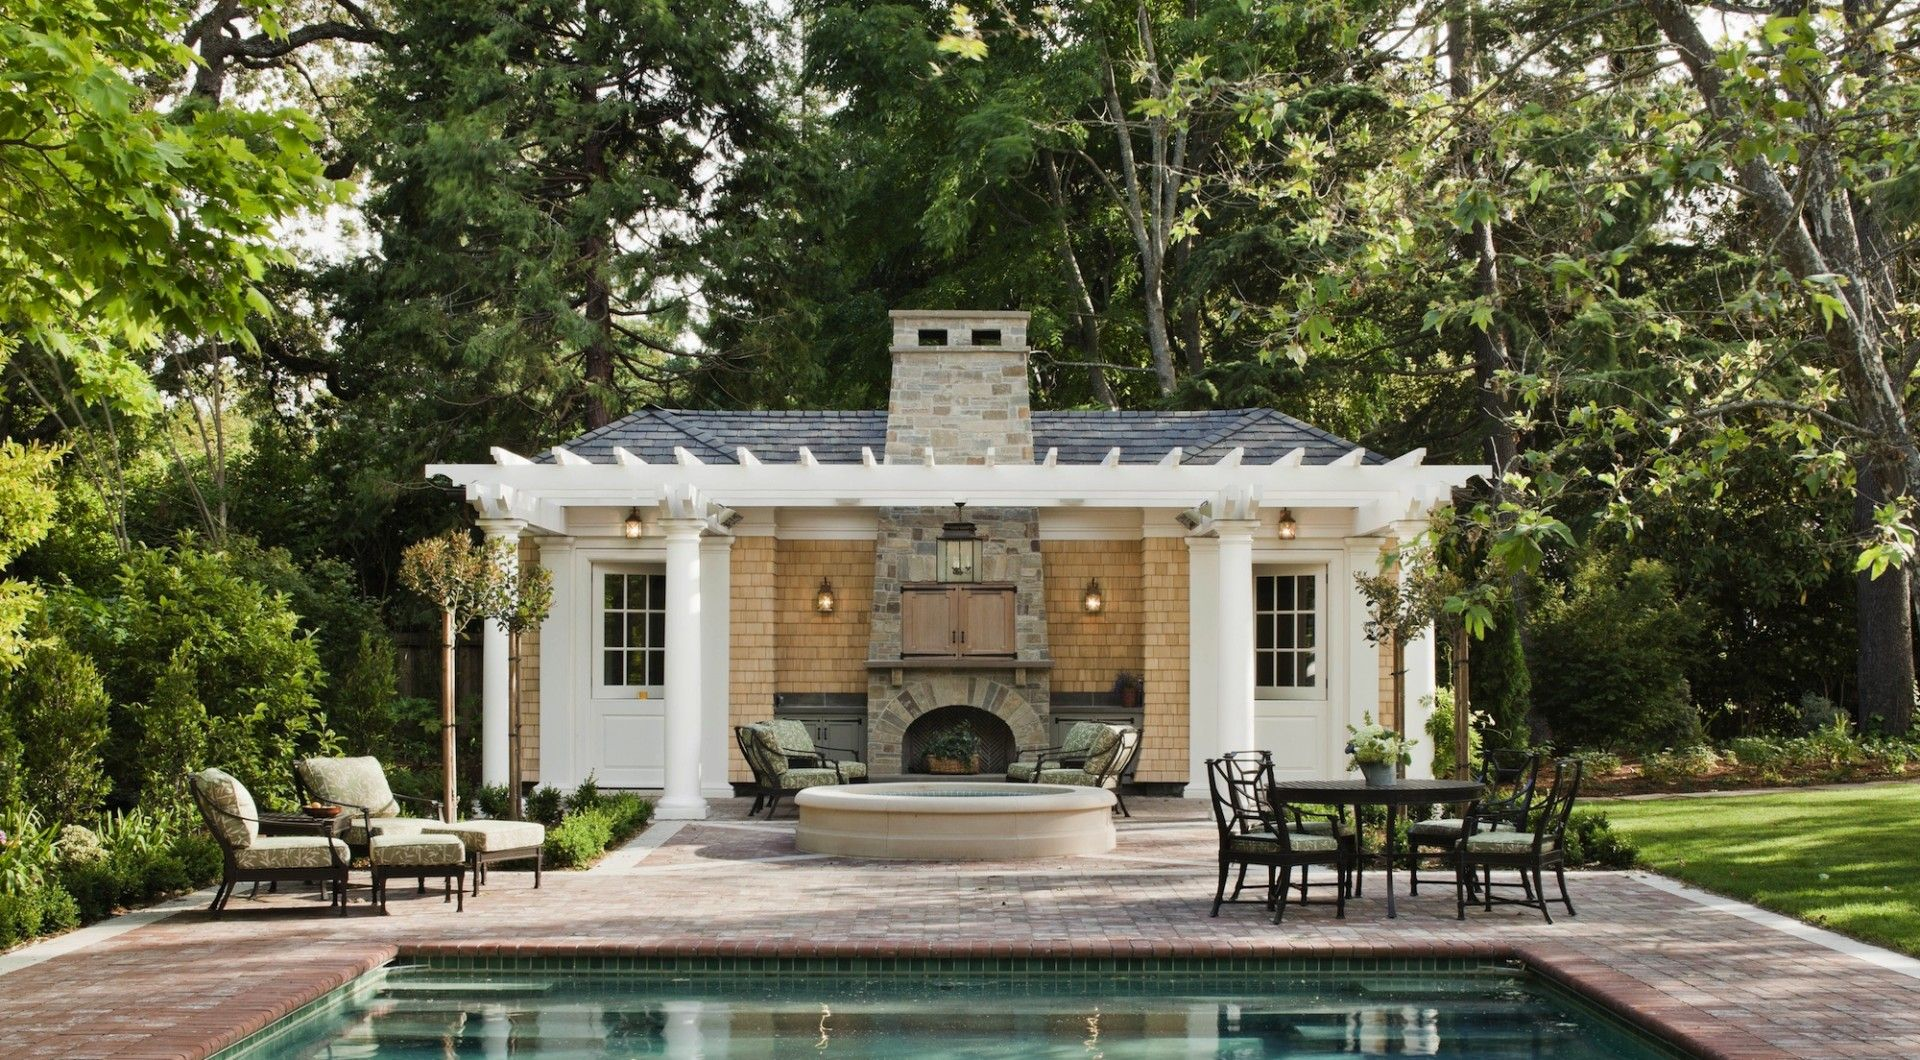 Pool House Designs Plans pool house rv garage plans Stunning Traditional Outdoor Fireplace Pool House Designs Ideas